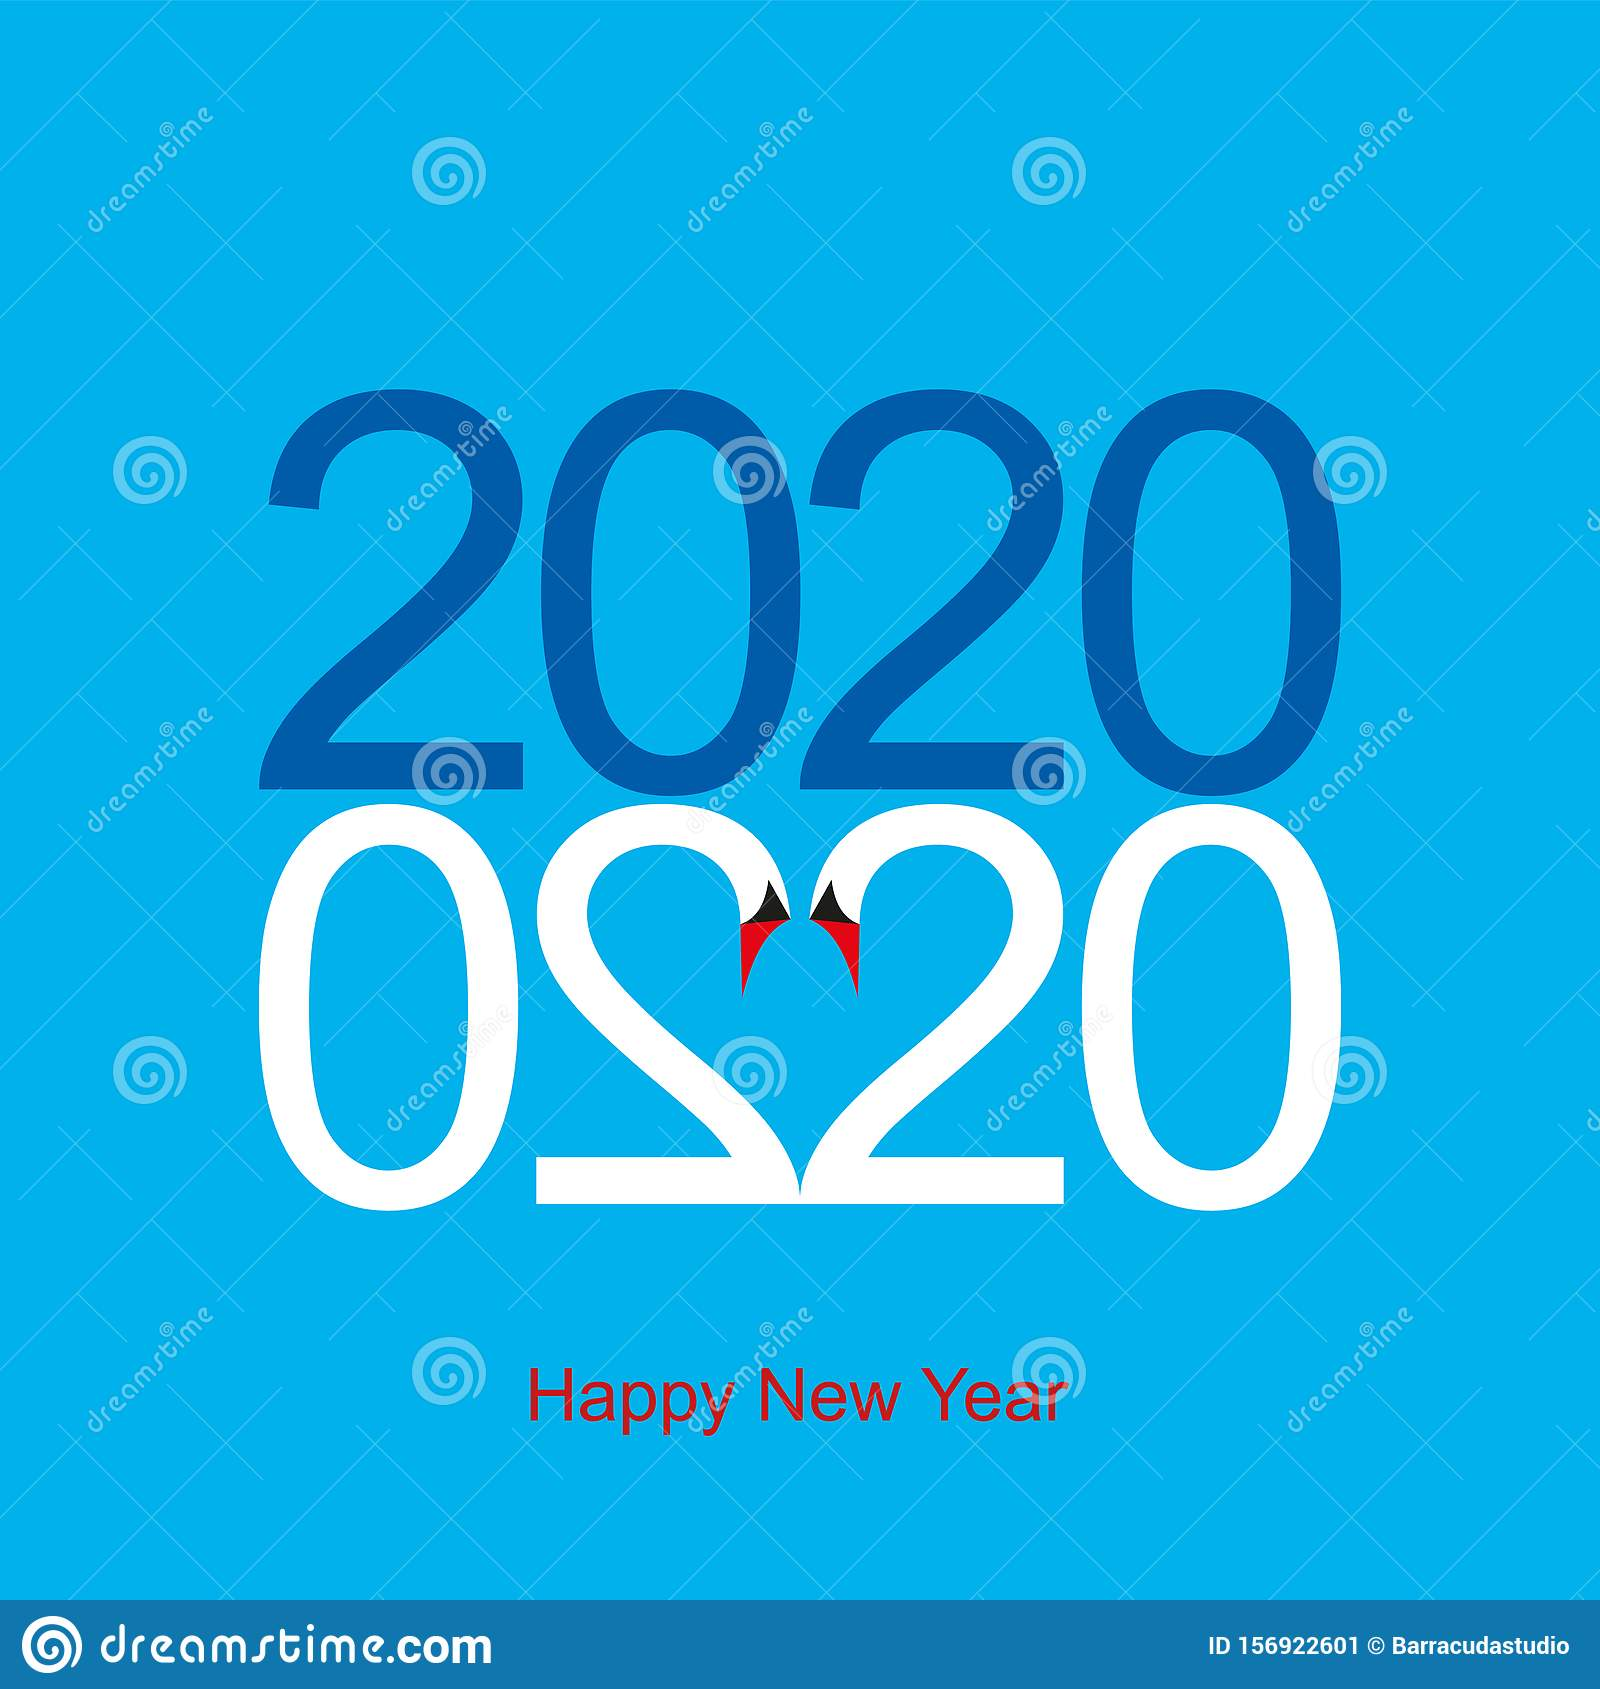 Happy New Year 2020 Greeting Card Two Swans From Two